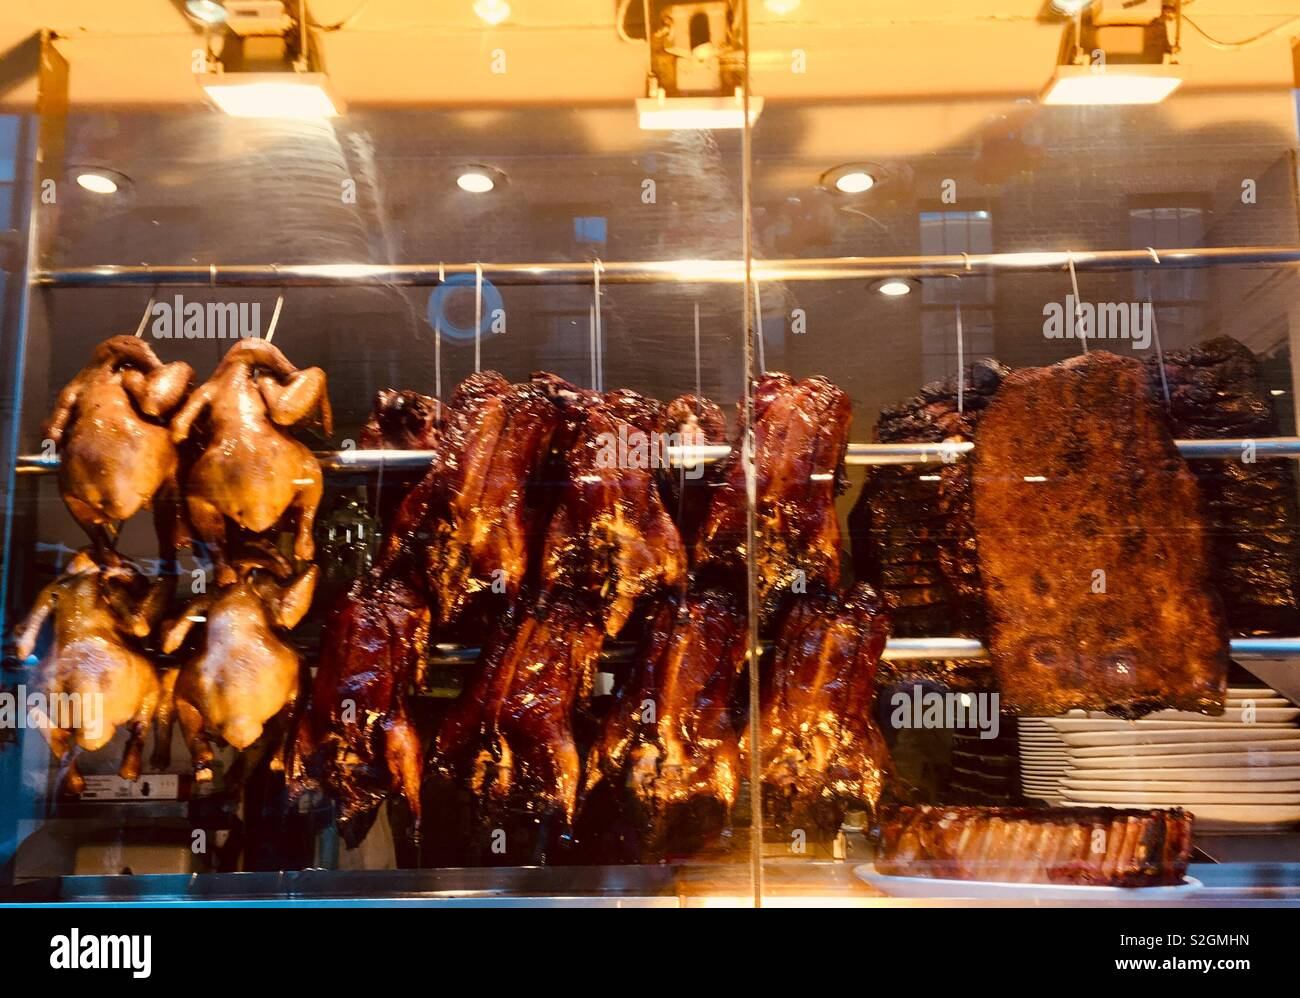 Crispy Duck, Chinese poultry in Chinatown London W1 - Stock Image